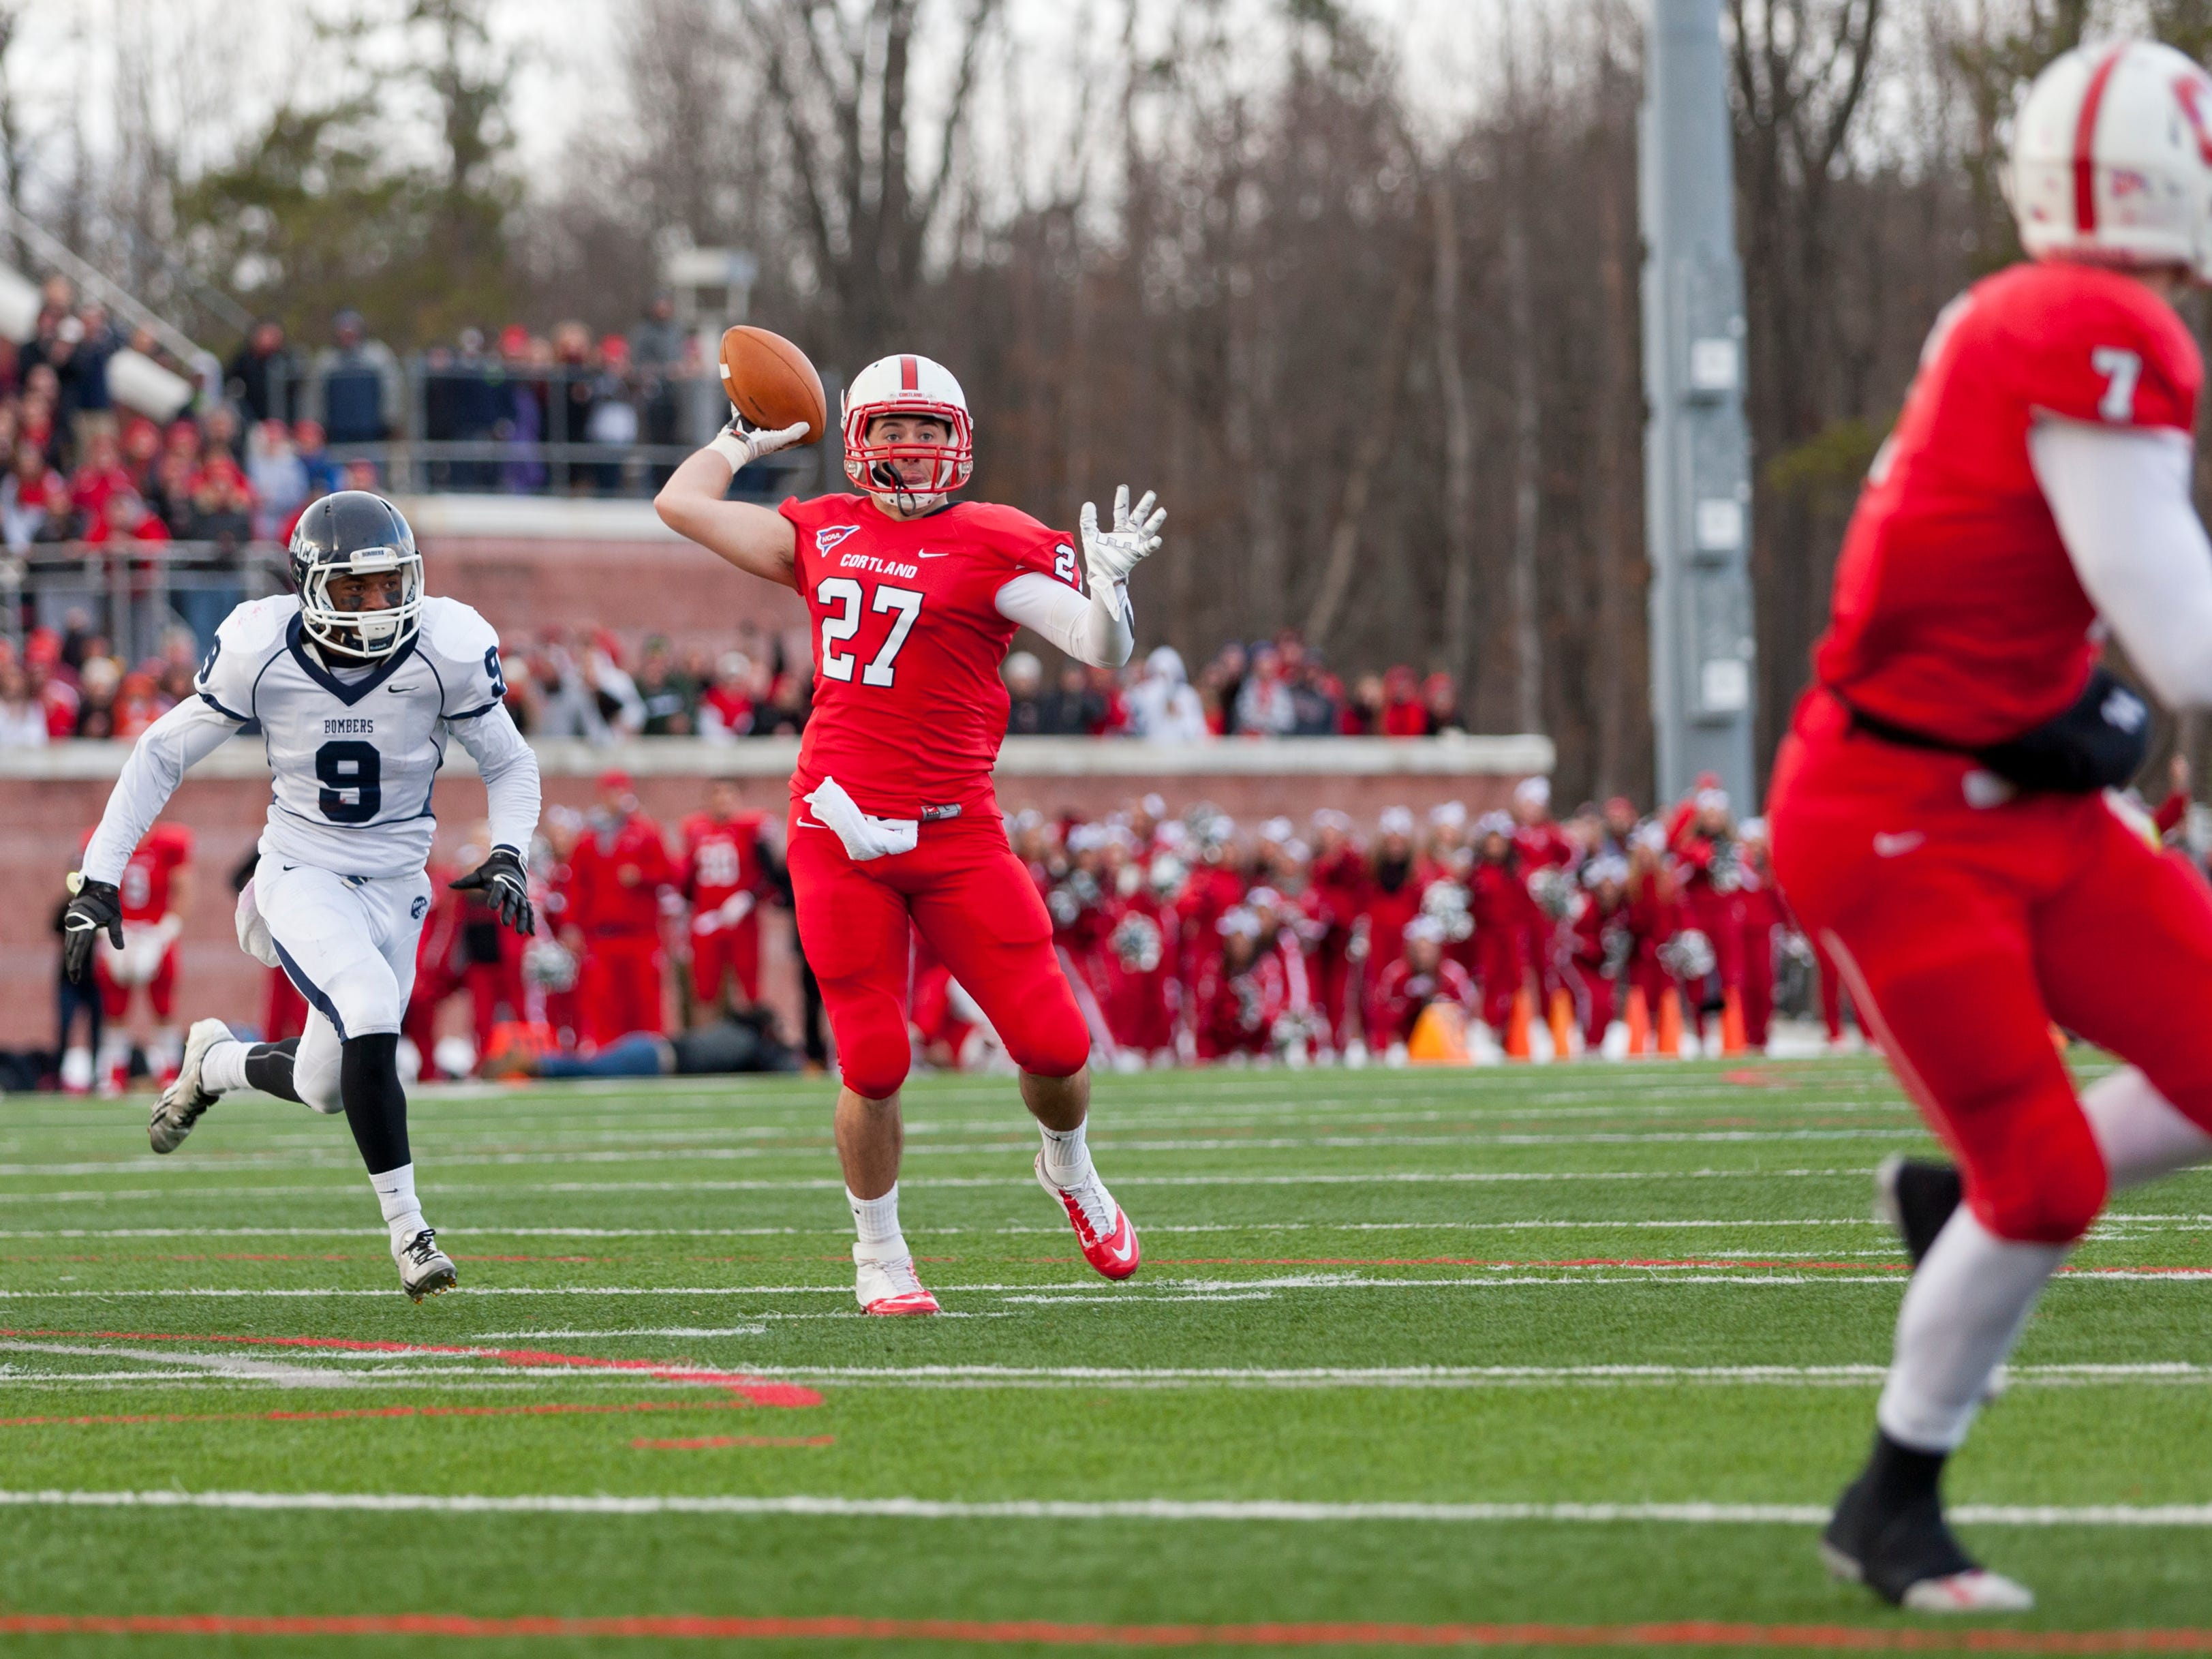 Ithaca's John D'Onofrio can't catch up as Cortland's Luke Hinton throws the winning touchdown to Jon Mannix  as time expires Saturday afternoon during the annual Cortaca Jug game. Cortland won 23-20.